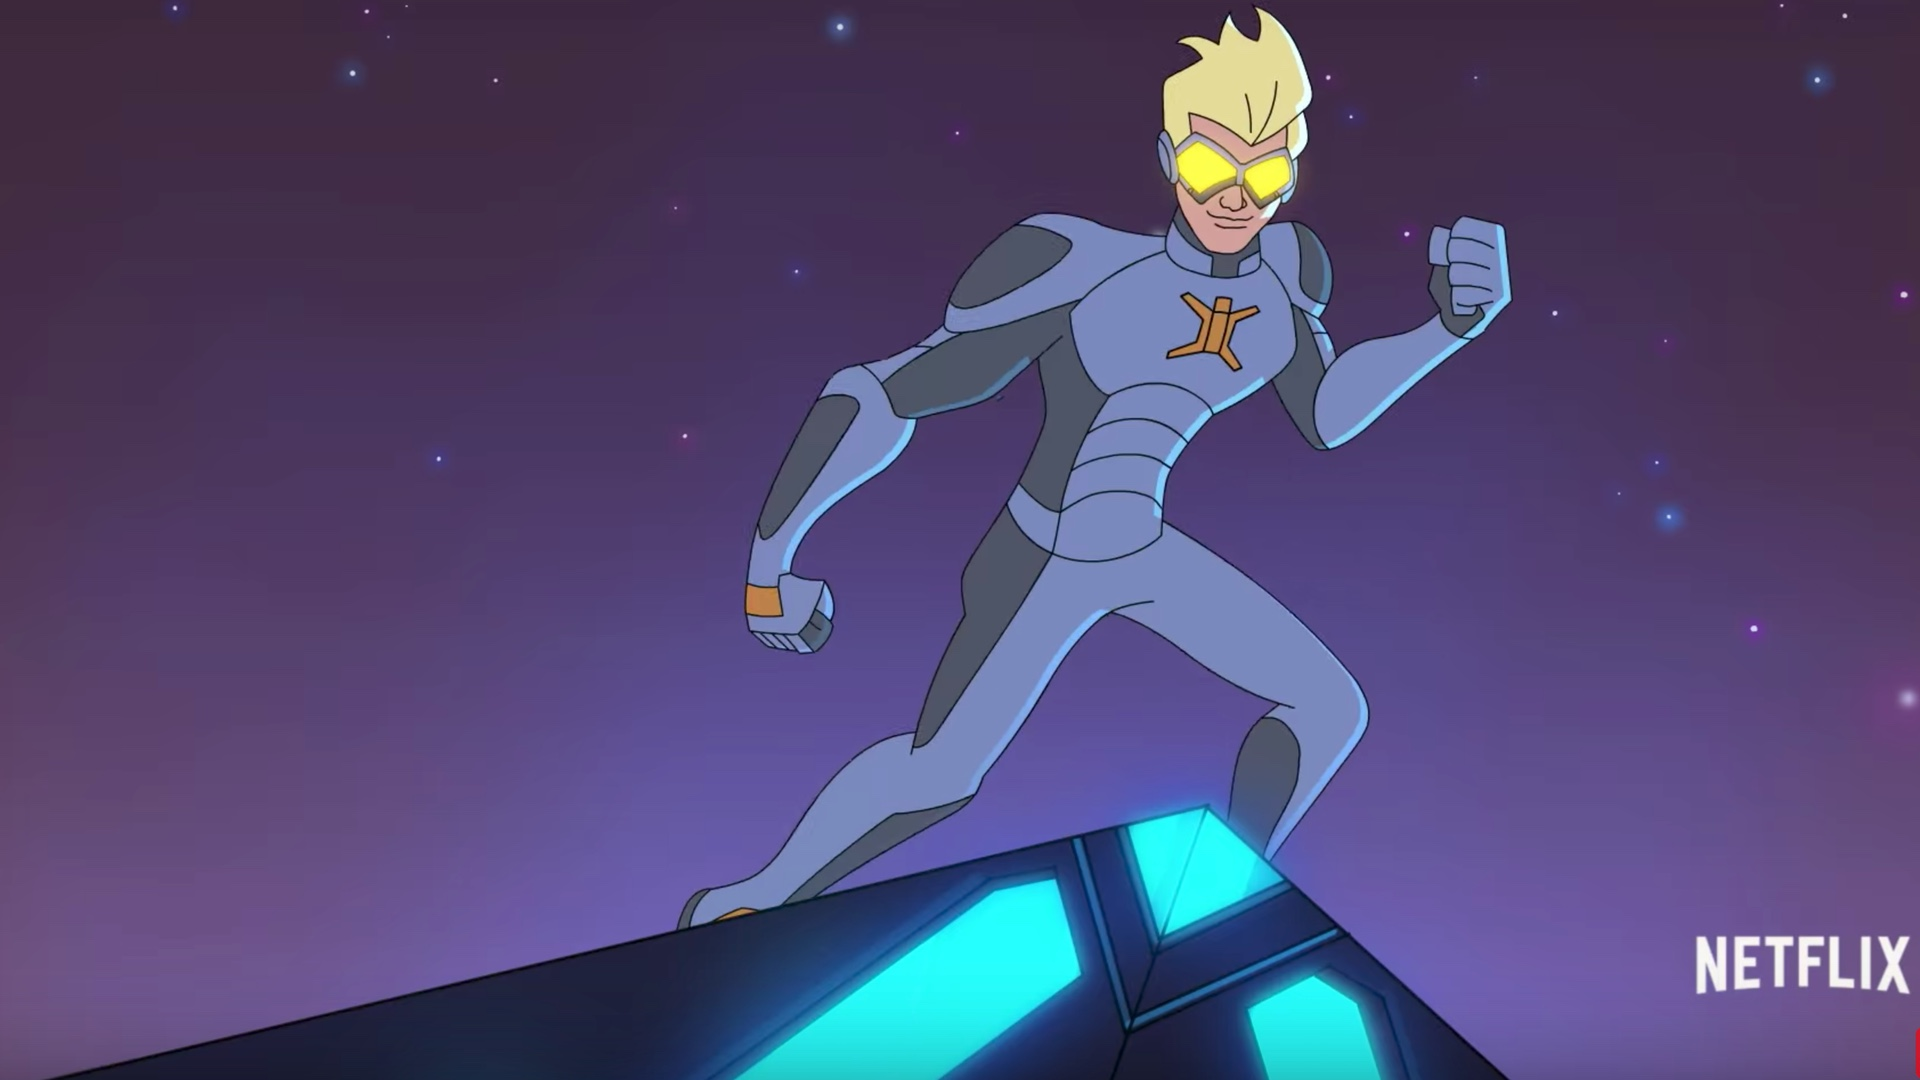 teaser-trailer-for-netflixs-animated-series-stretch-armstrong-and-the-flex-fighters-social.jpg